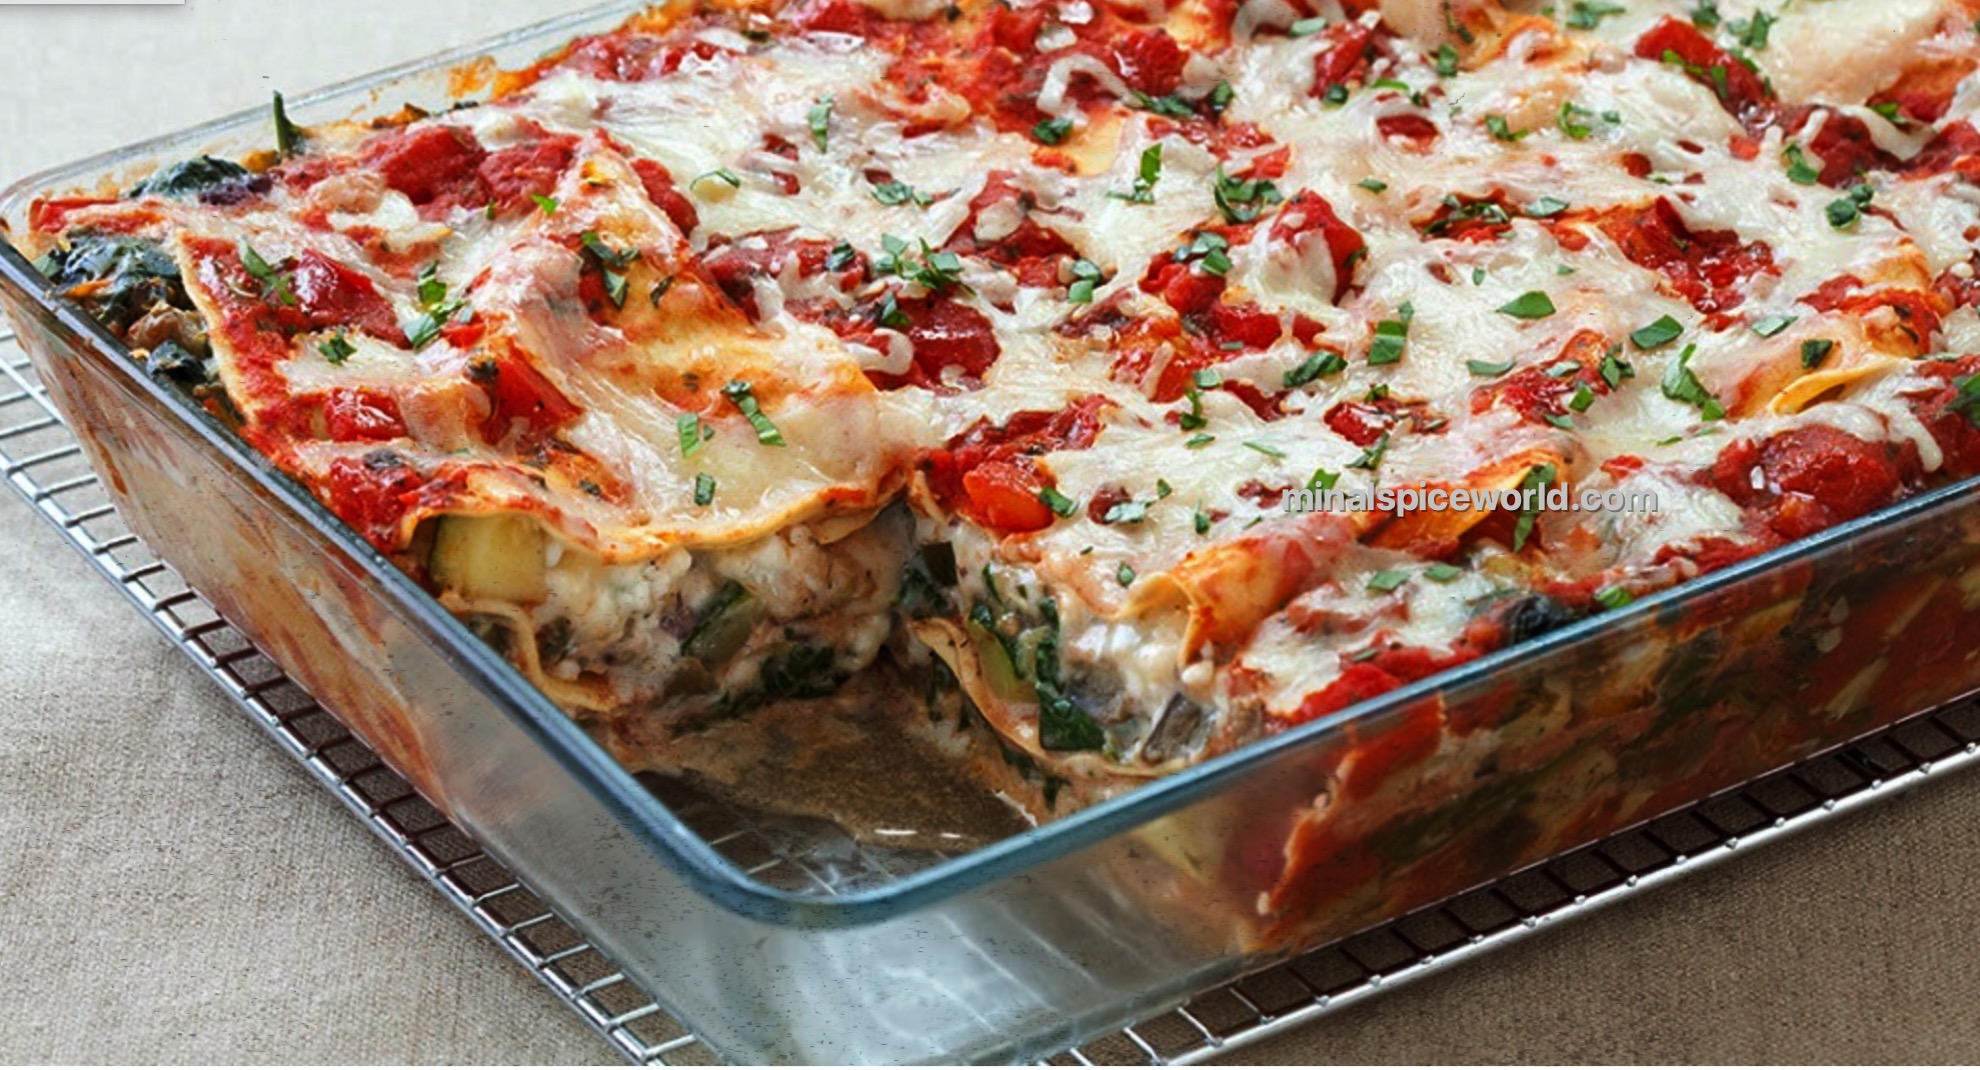 with layers of vegetables